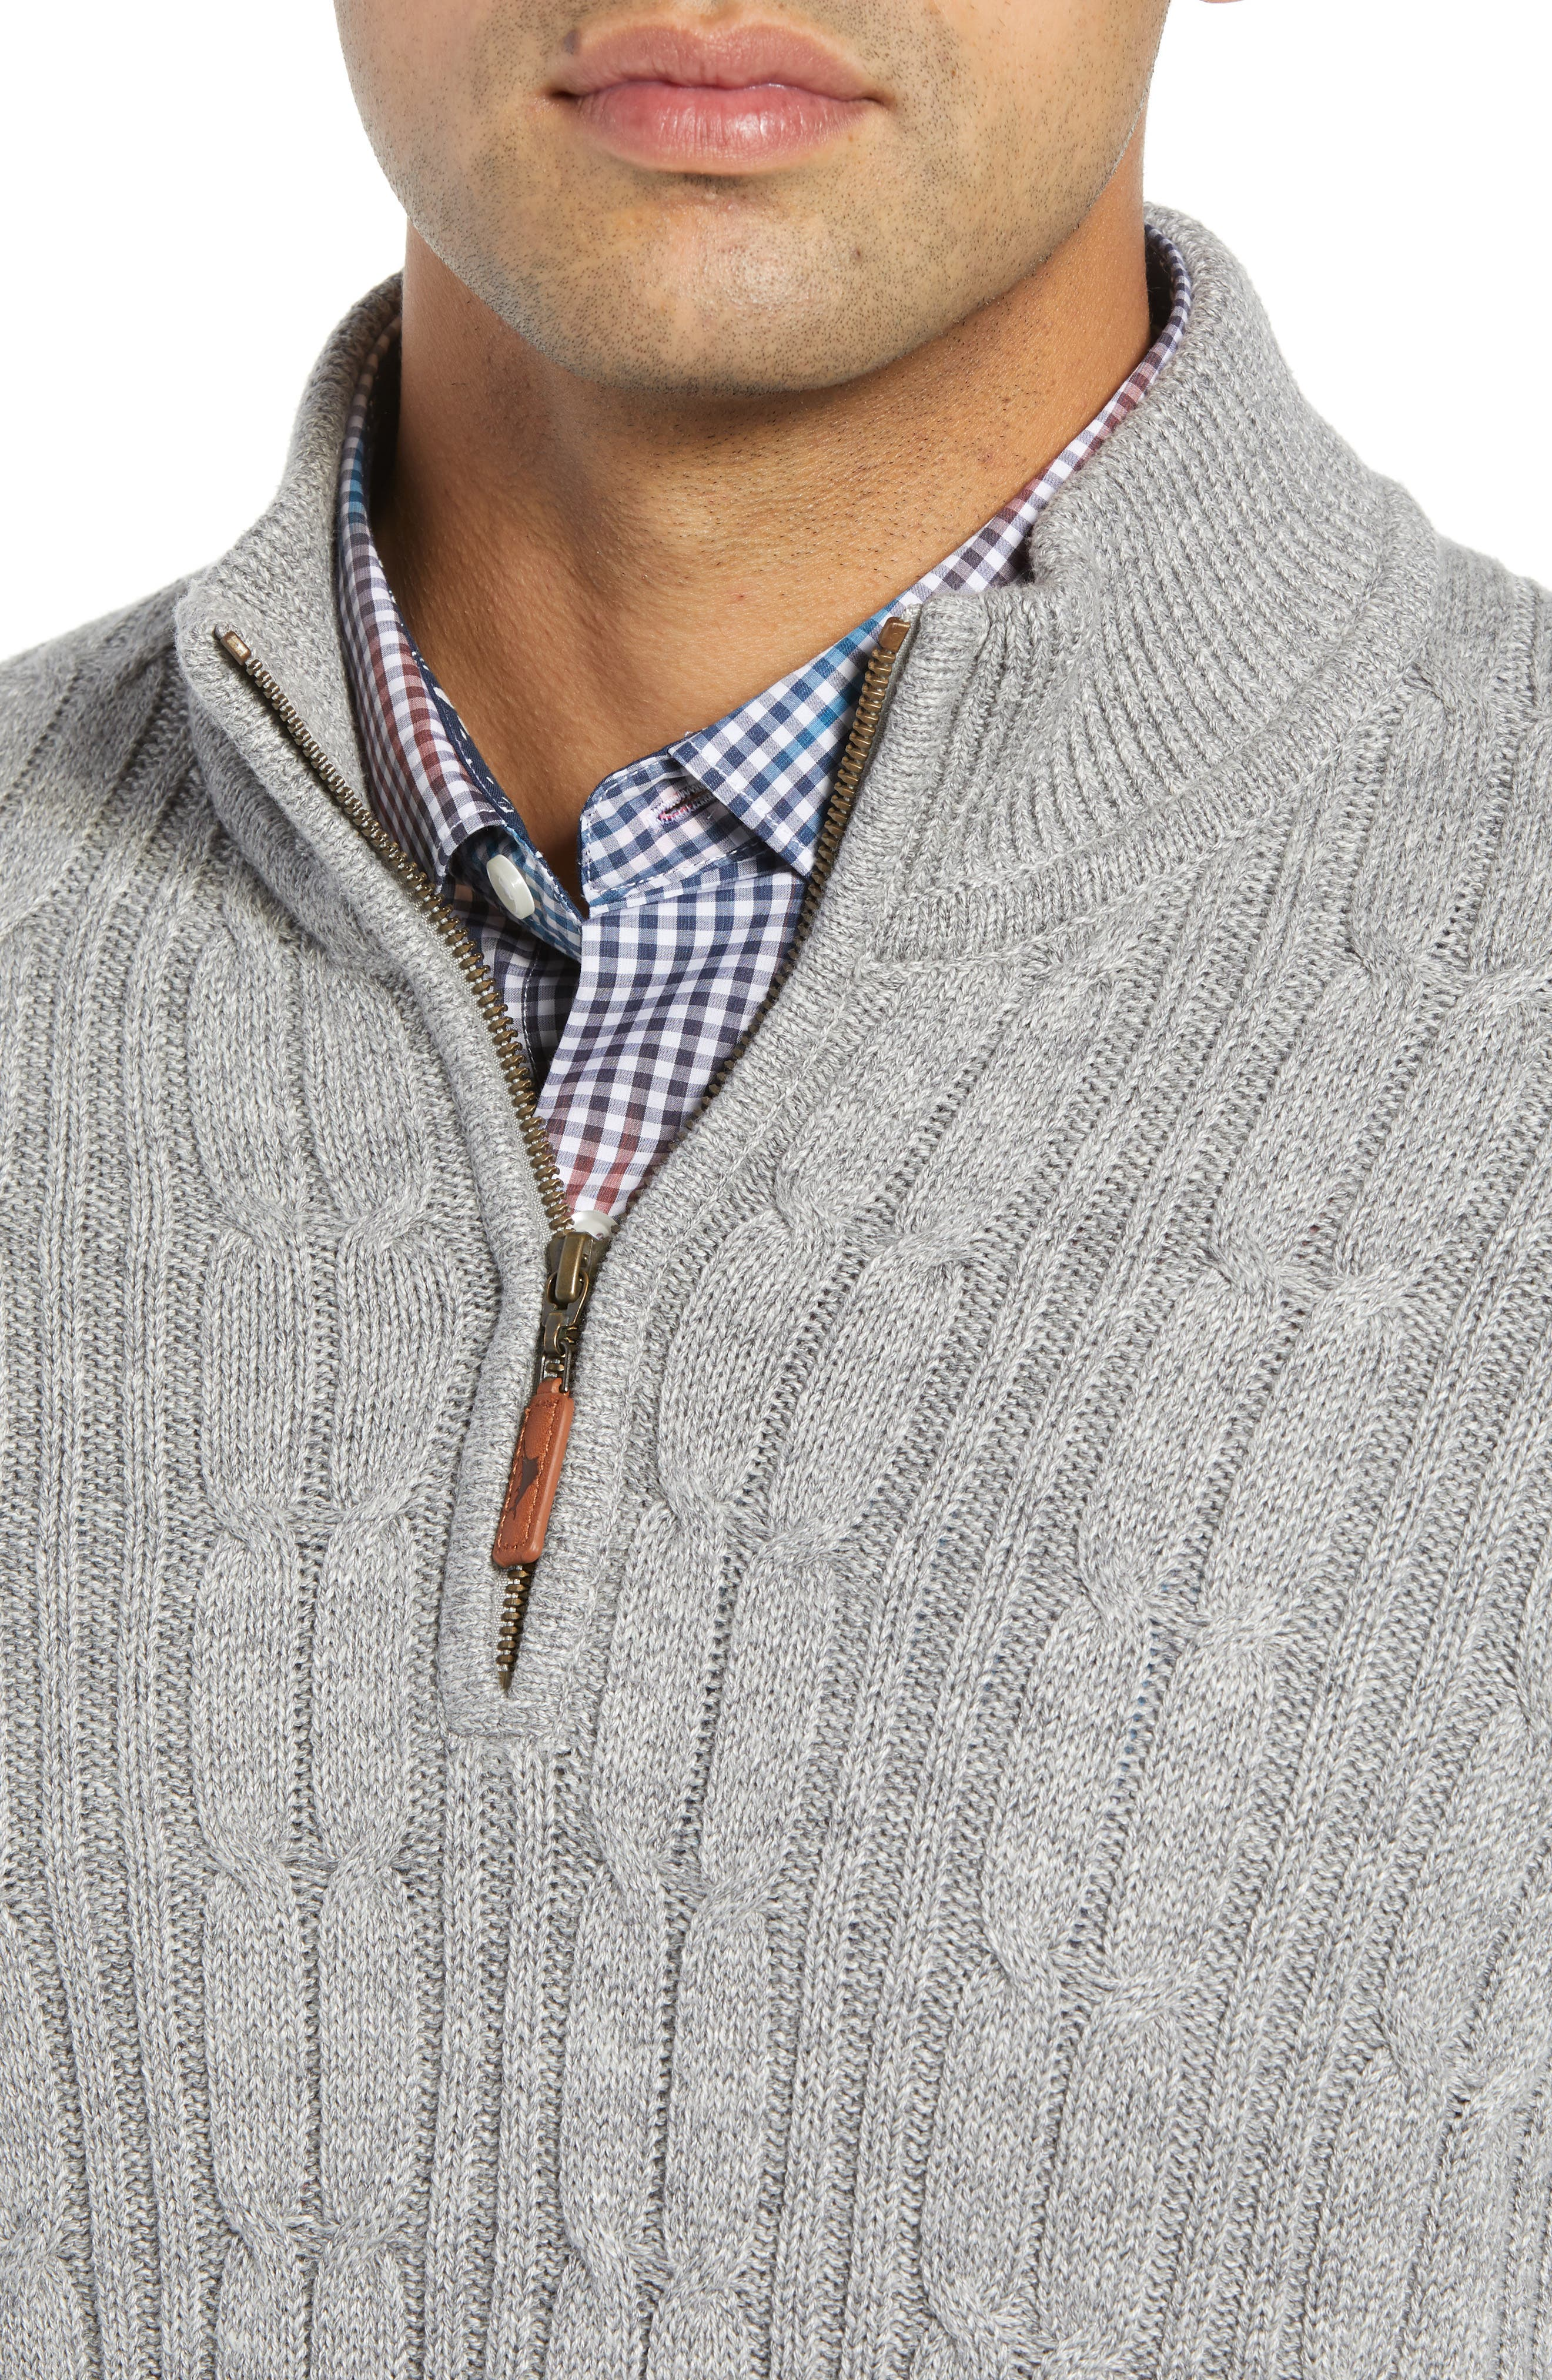 Tenorio Cable Knit Zip Sweater,                             Alternate thumbnail 4, color,                             LIGHT STORM